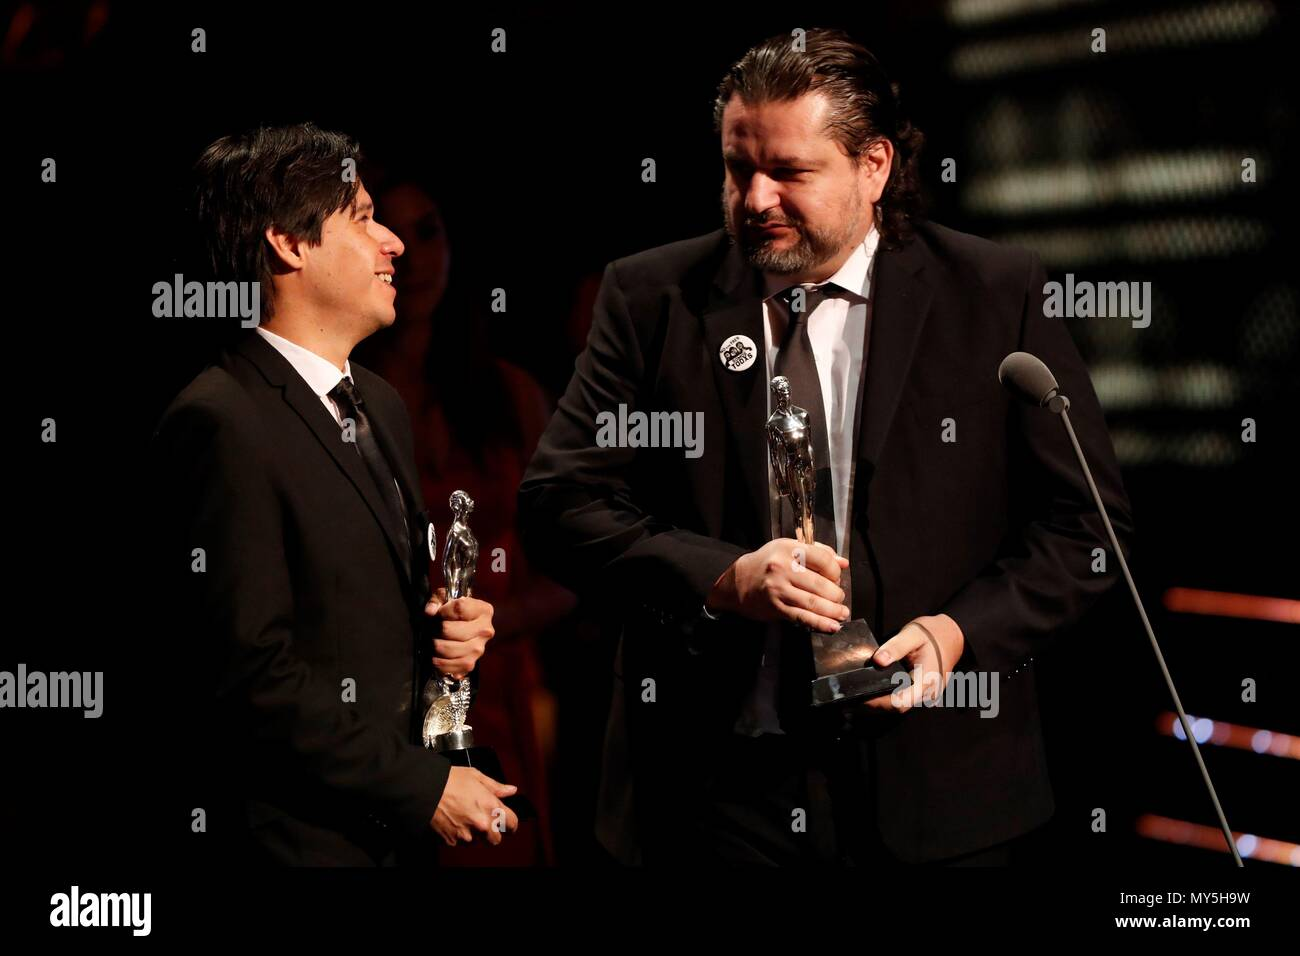 Actor Alexandro Aldrete (L) and writer Diego Enrique Osorno receive their Arial Award to the Best Short Documentary Film for 'La Muneca Tetona' during Mexico's 60th Ariel Film Awards handover ceremony held in Mexico City, Mexico, 05 June 2018 (issued on 06 June). EFE/ Mario Guzman - Stock Image